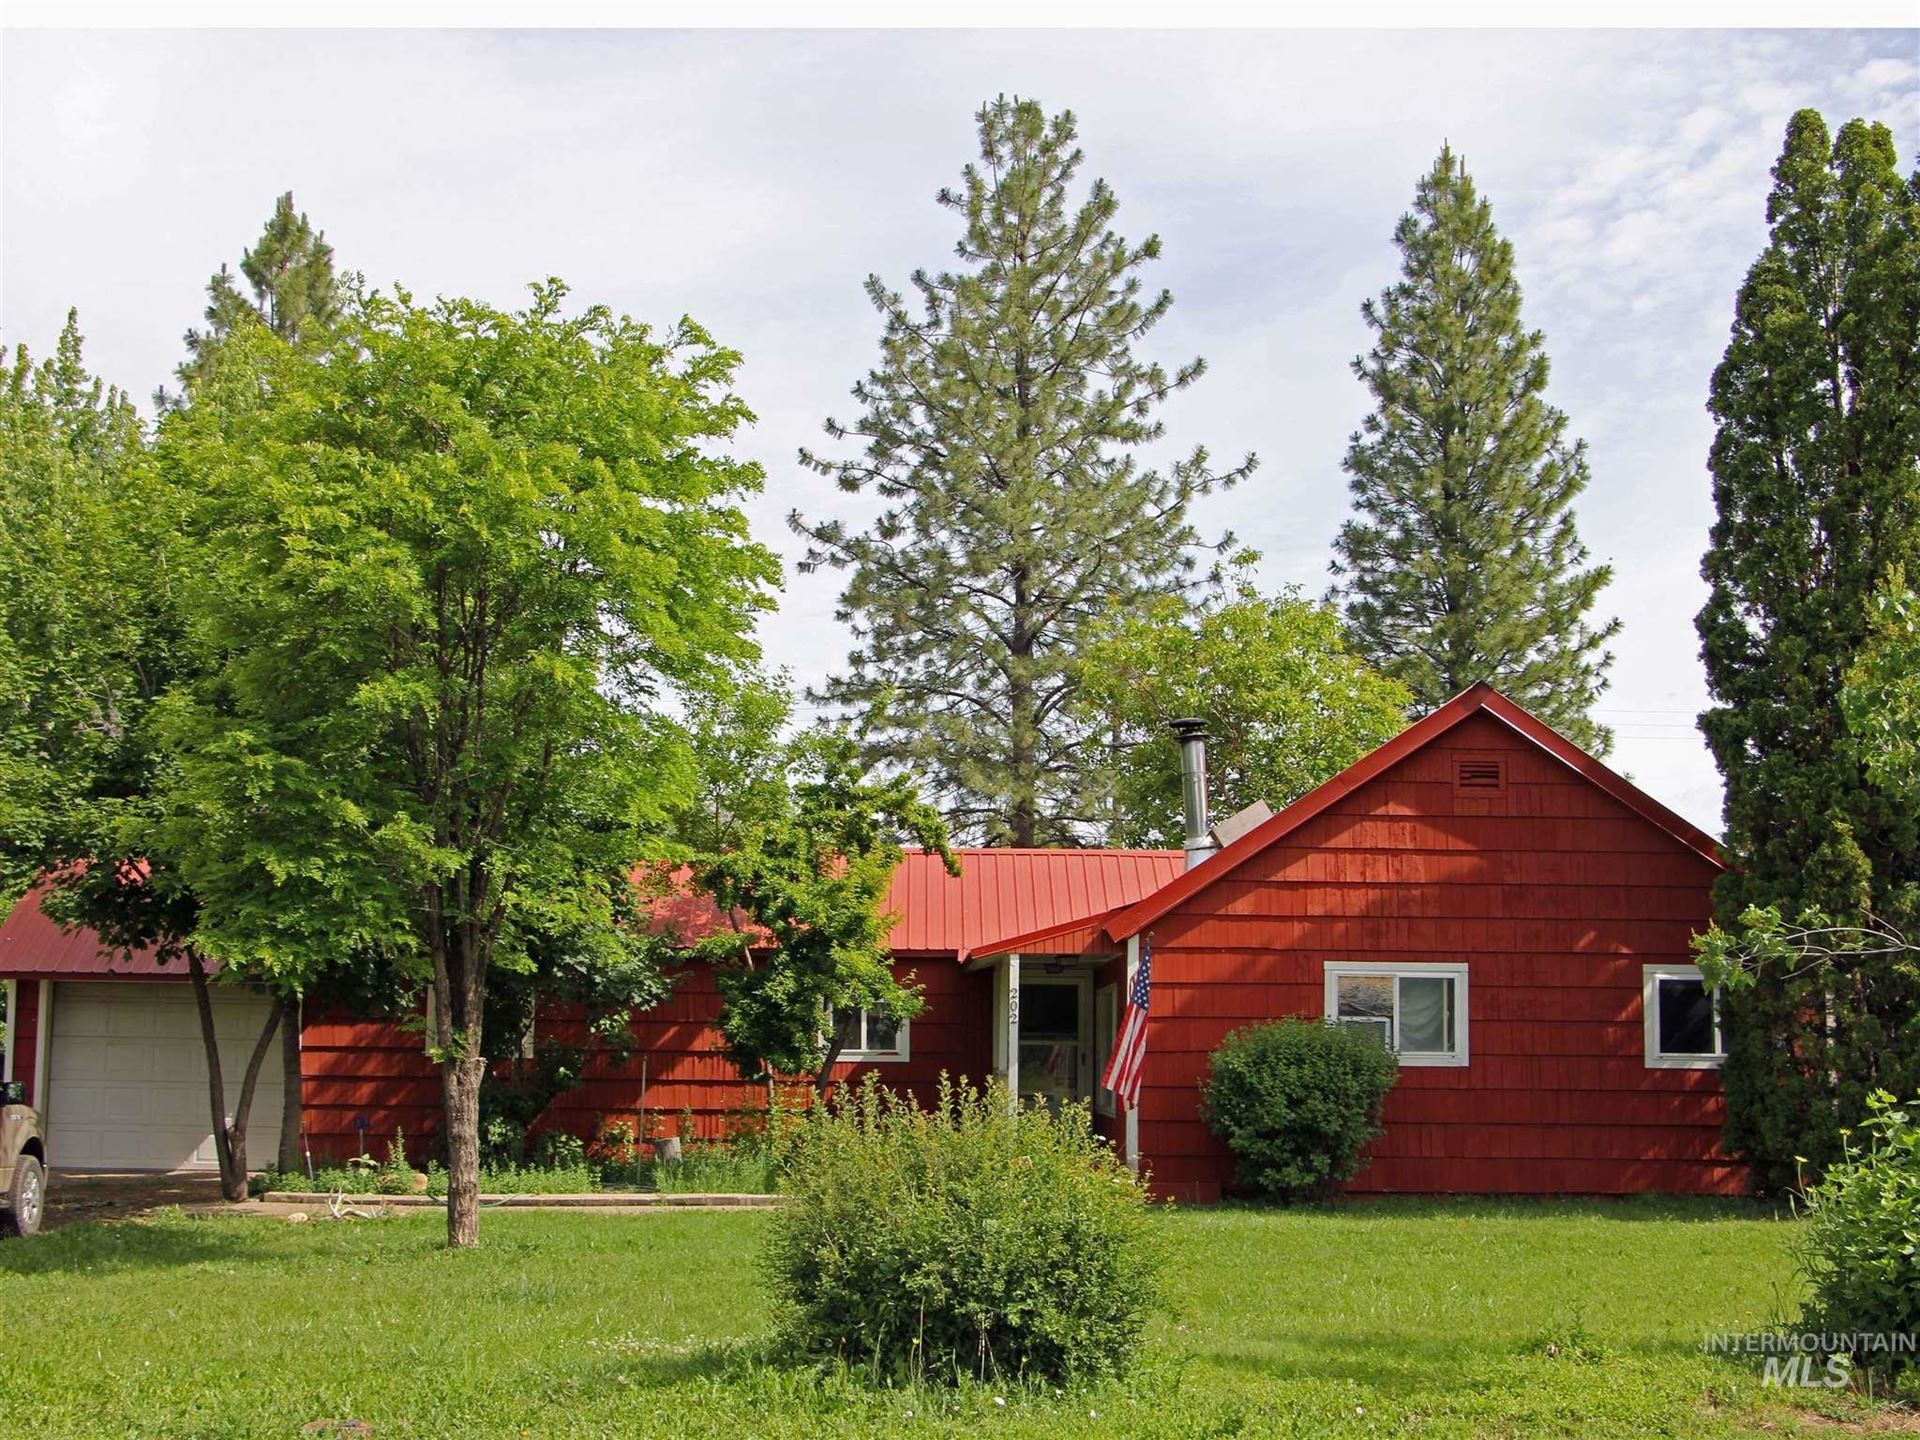 202 1st Ave, Council, ID 83612 - MLS#: 98774942